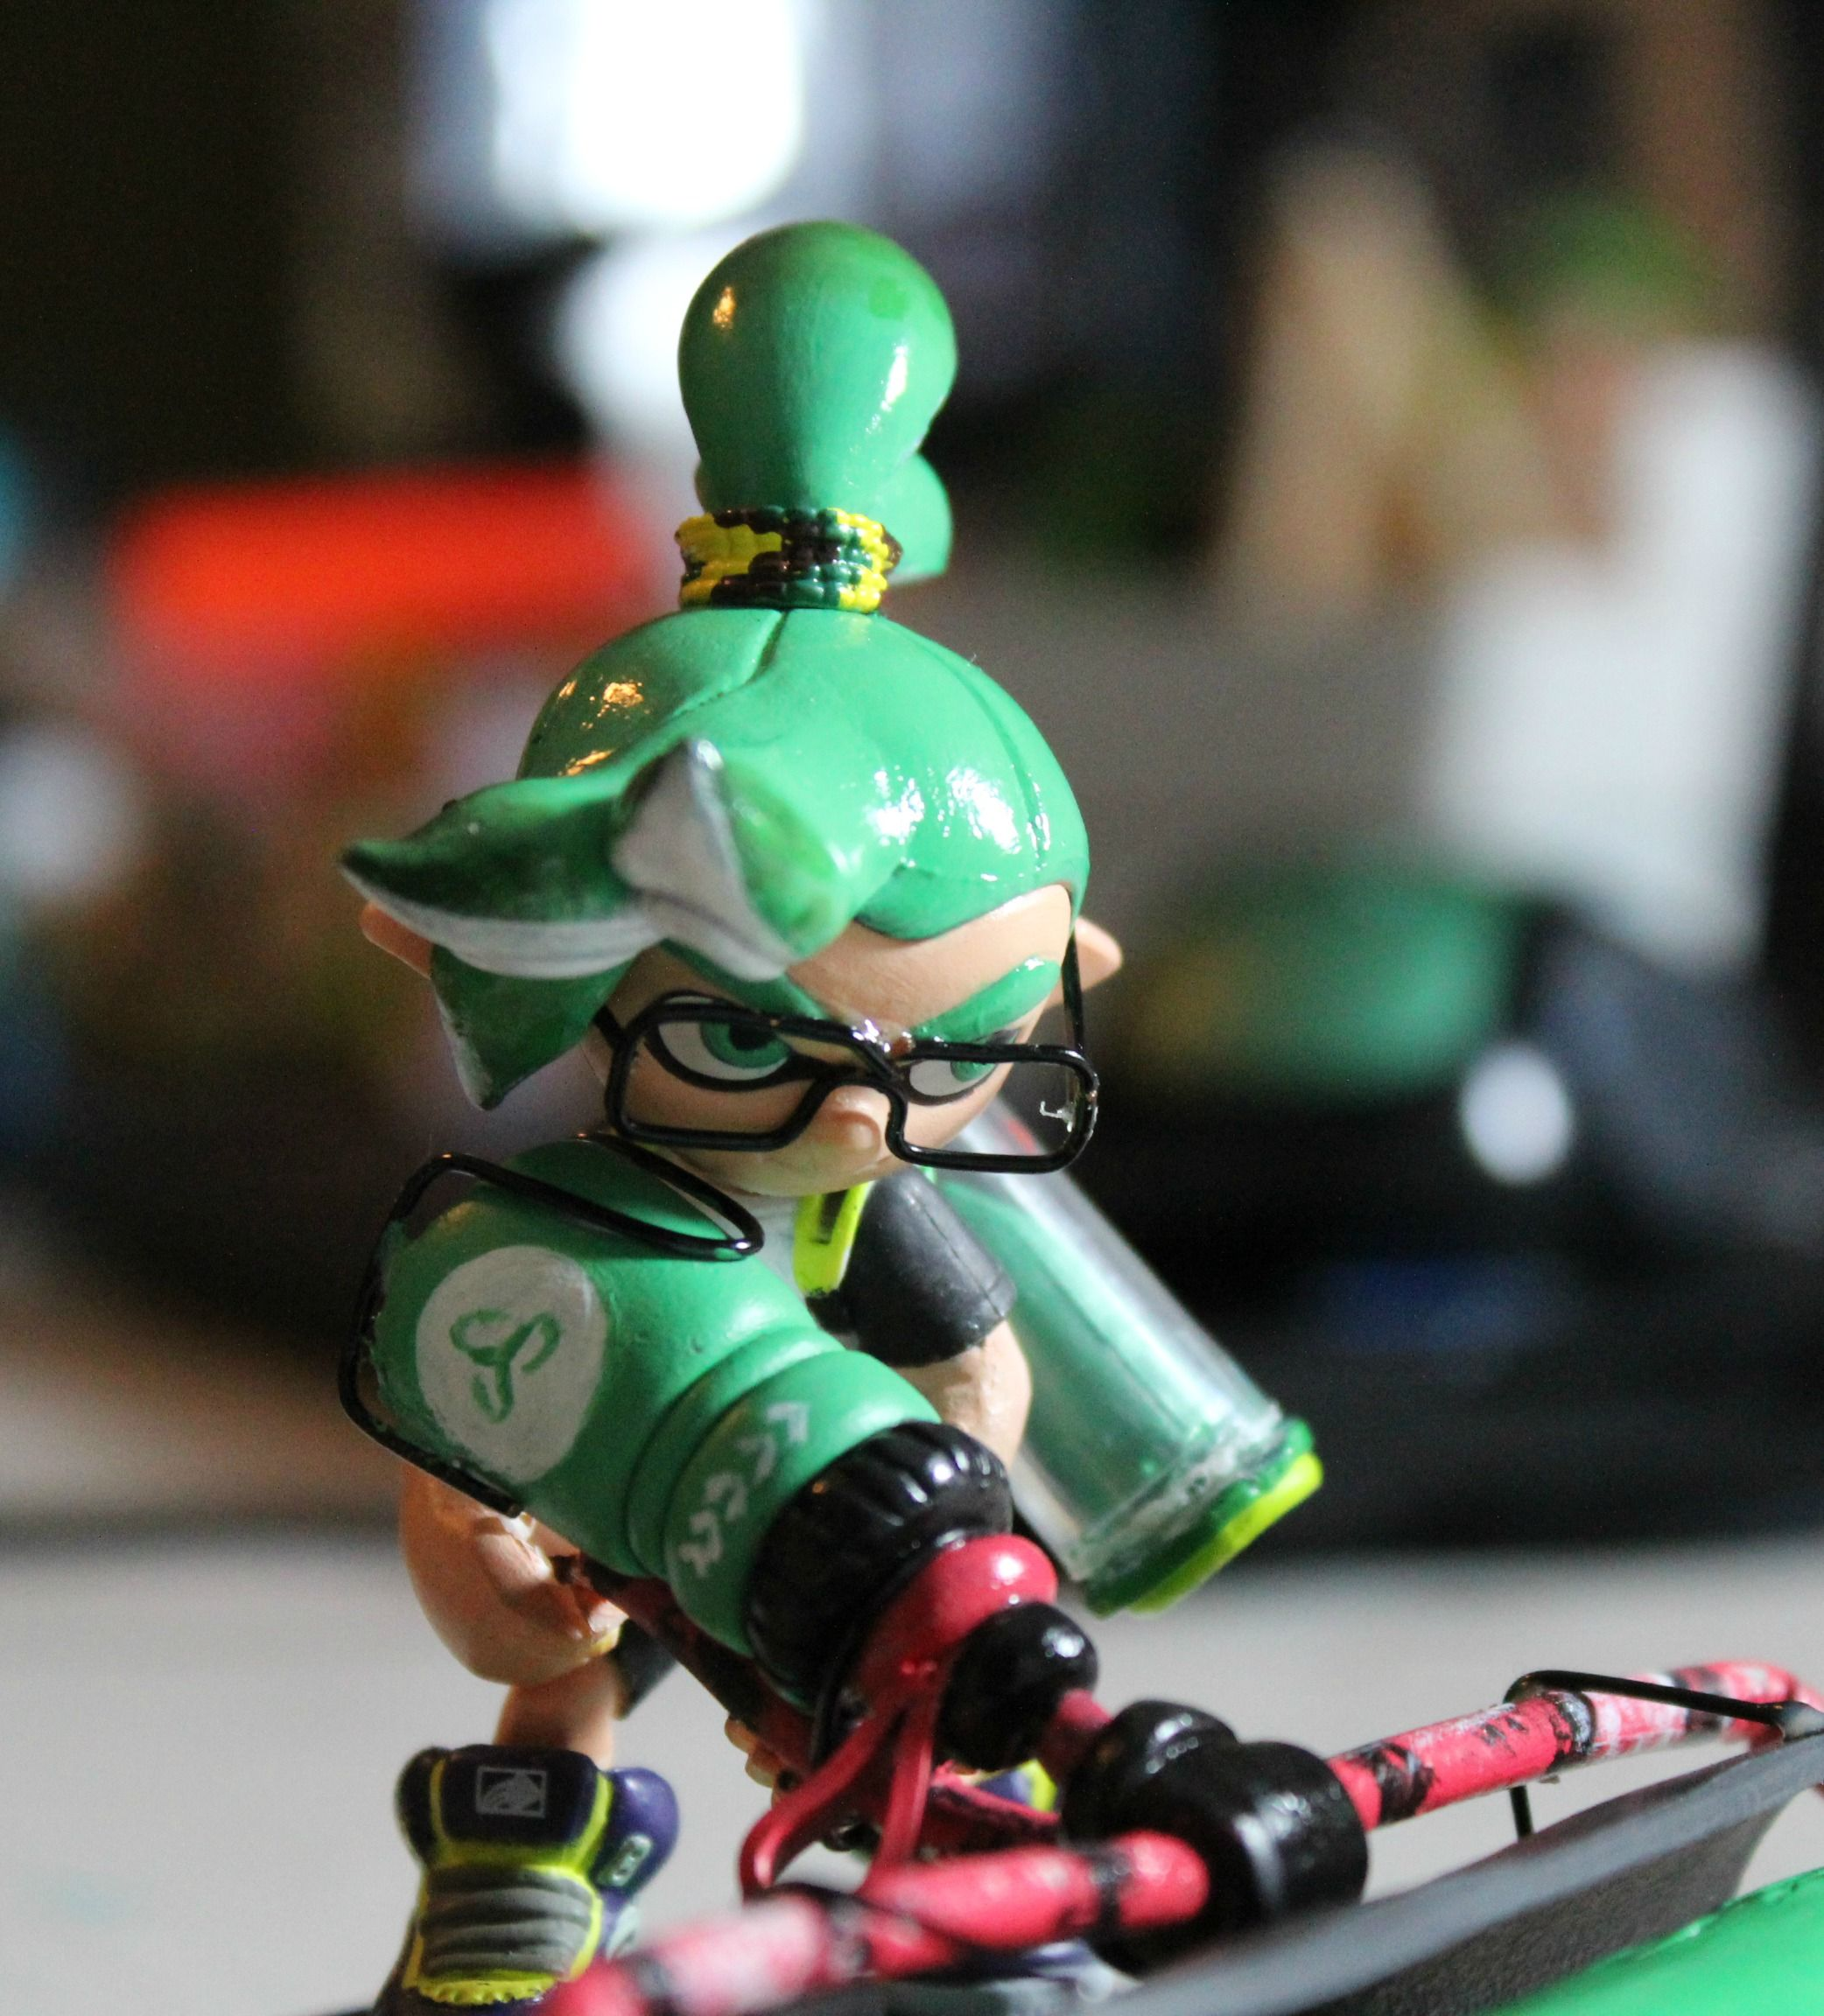 Heres An Original Hairstyle For A Custom Inkling Boy Inklings Splatoon Amiibo